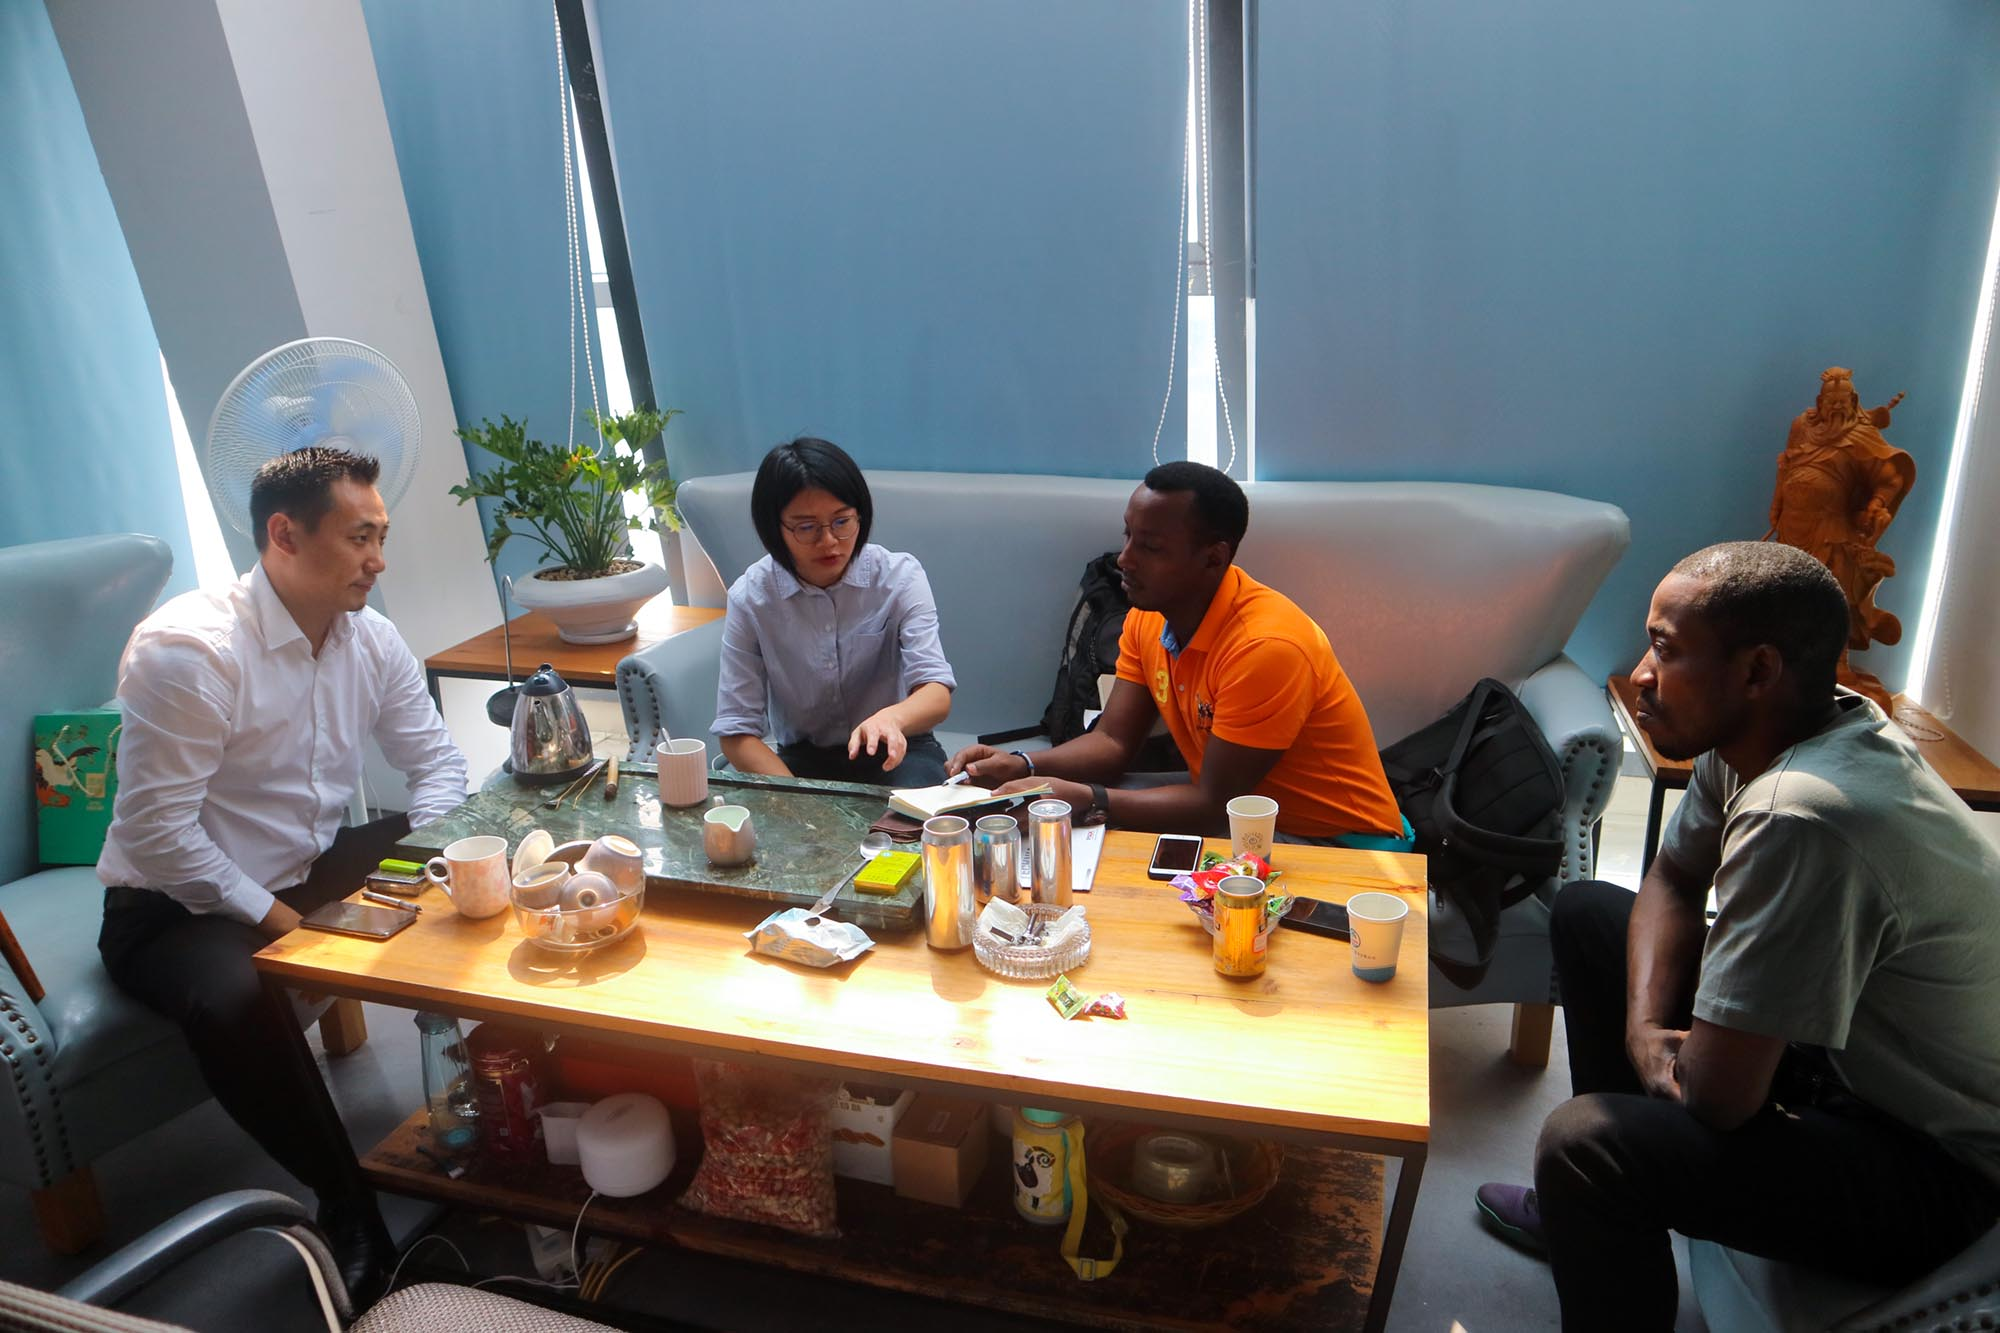 Our African customers are visting Interpack Group.